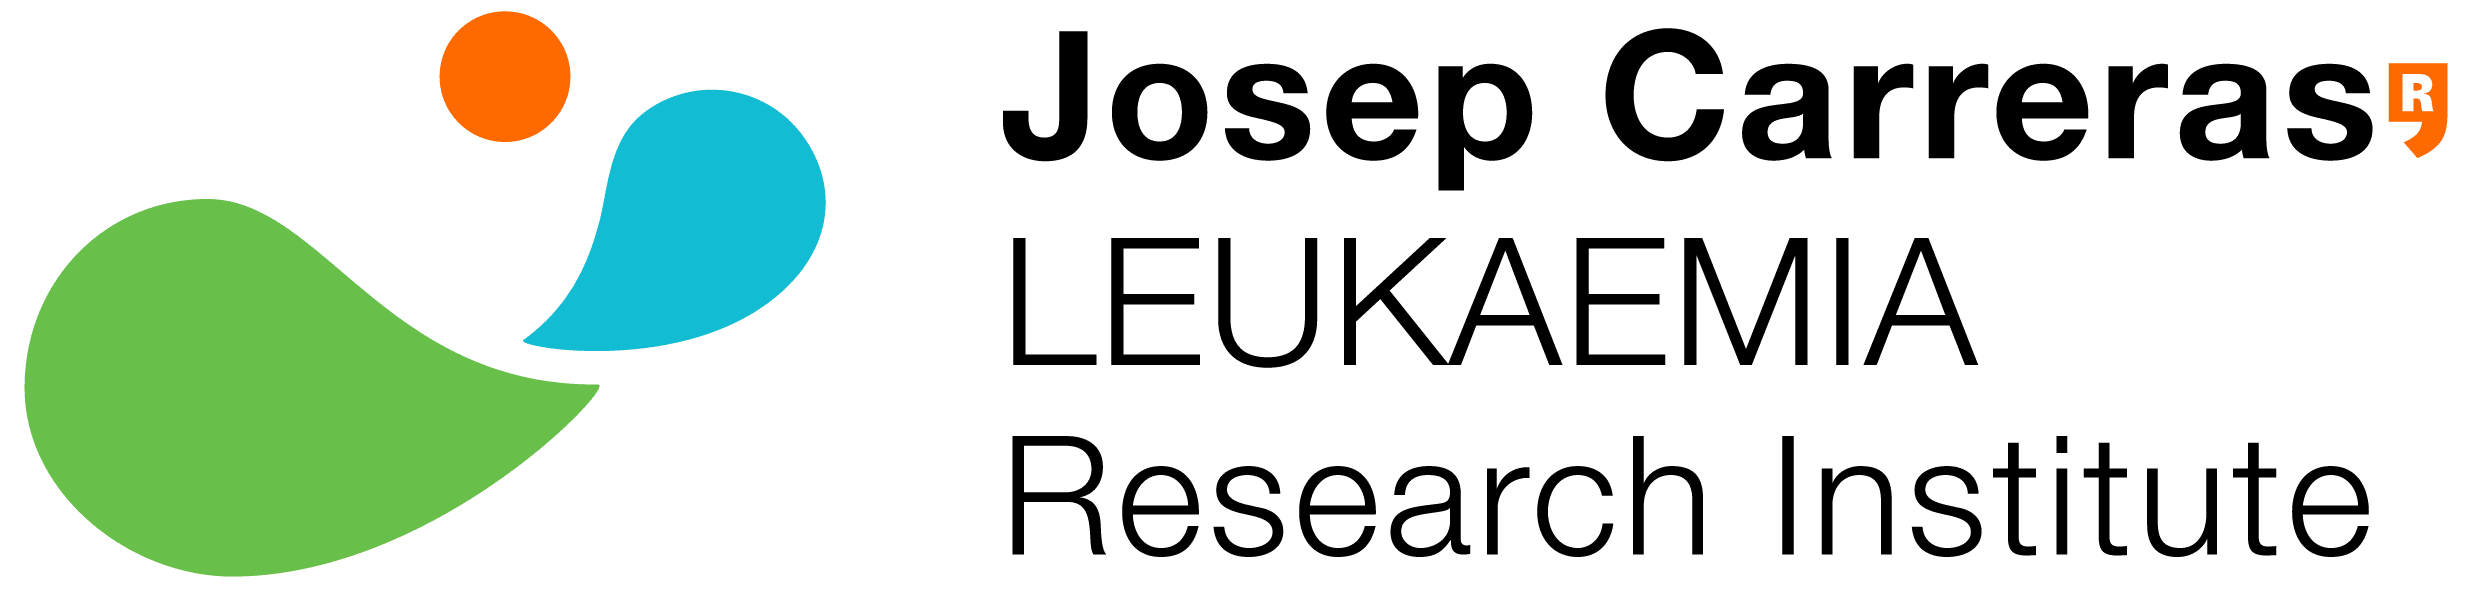 ijc-carreras-leukaemia-research